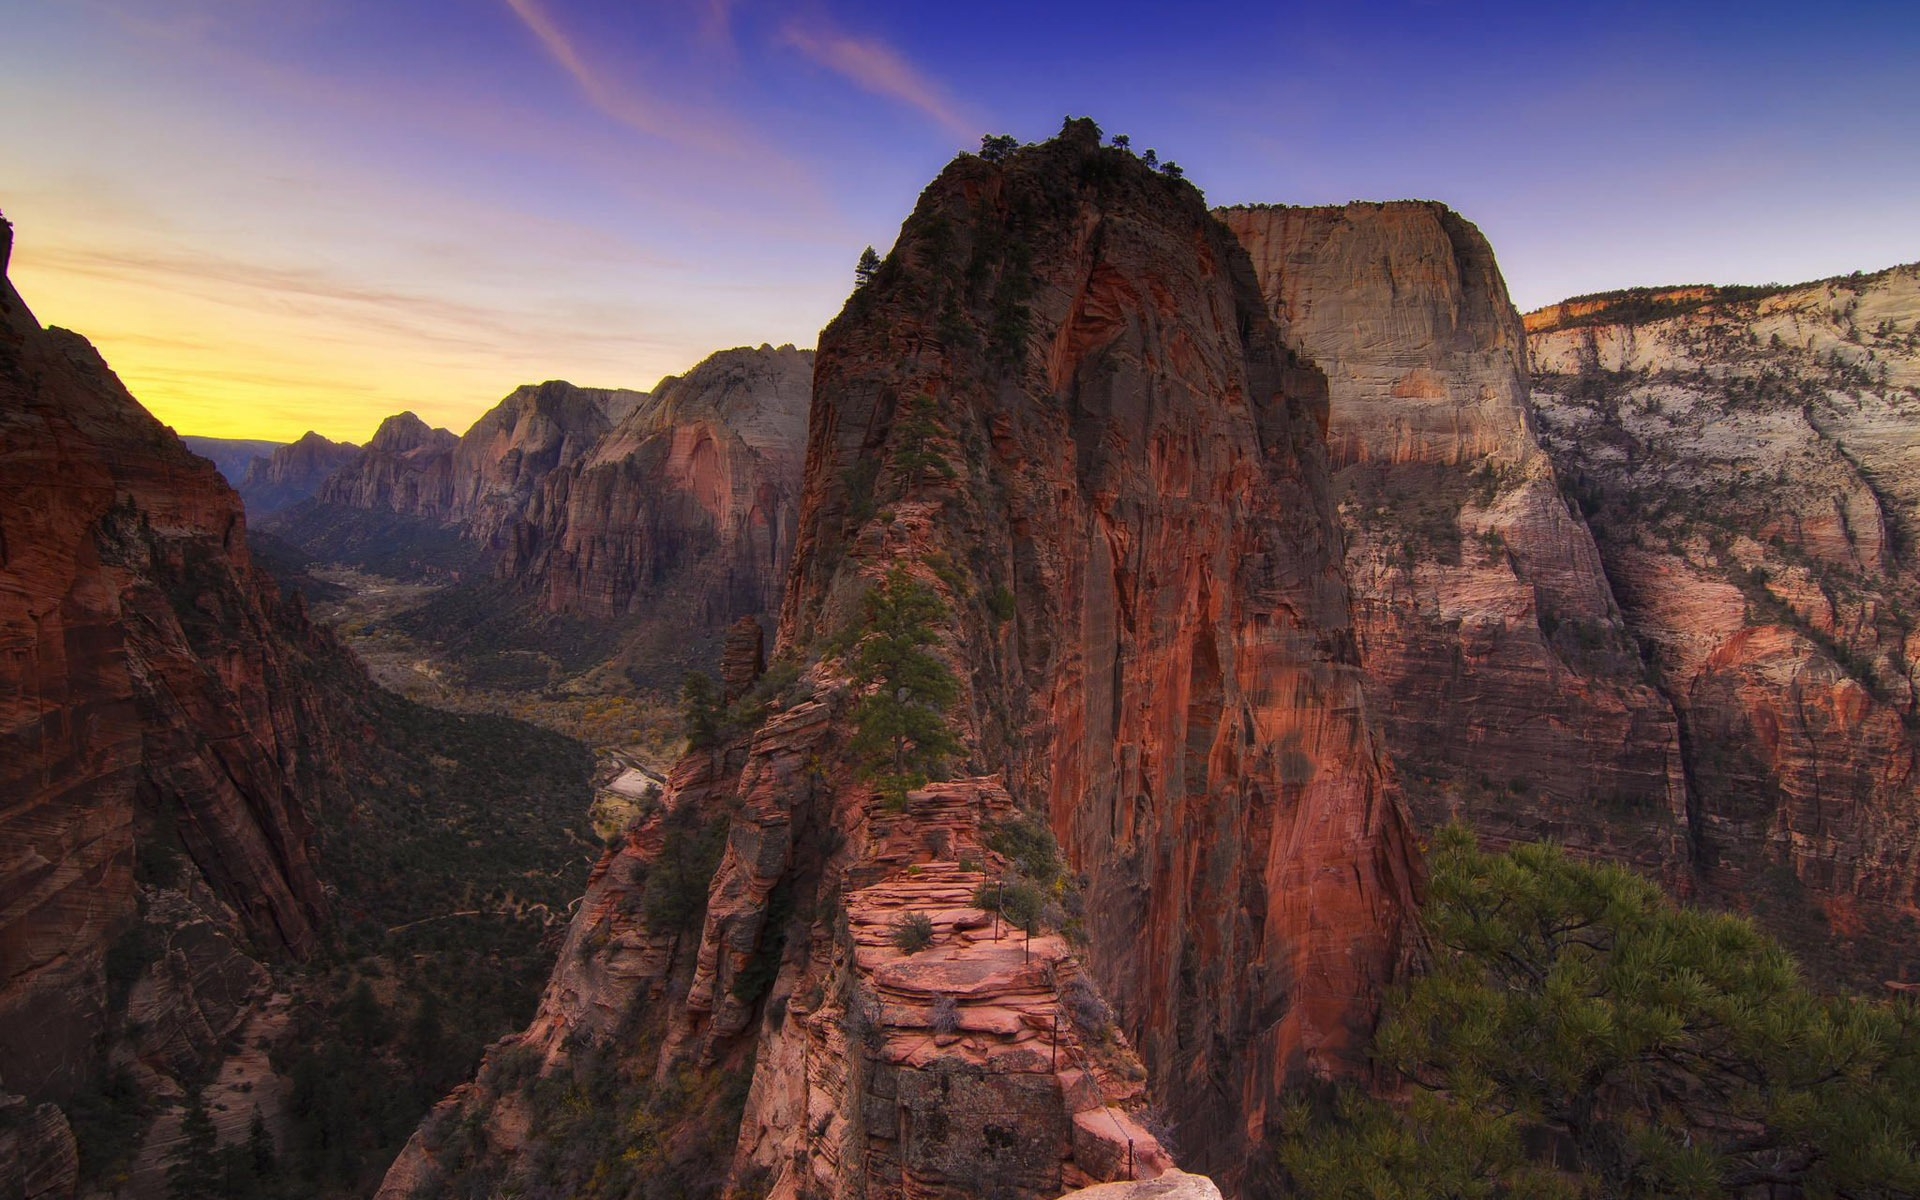 zion national park Scenery HD Wallpaper 1920x1200 1920x1200